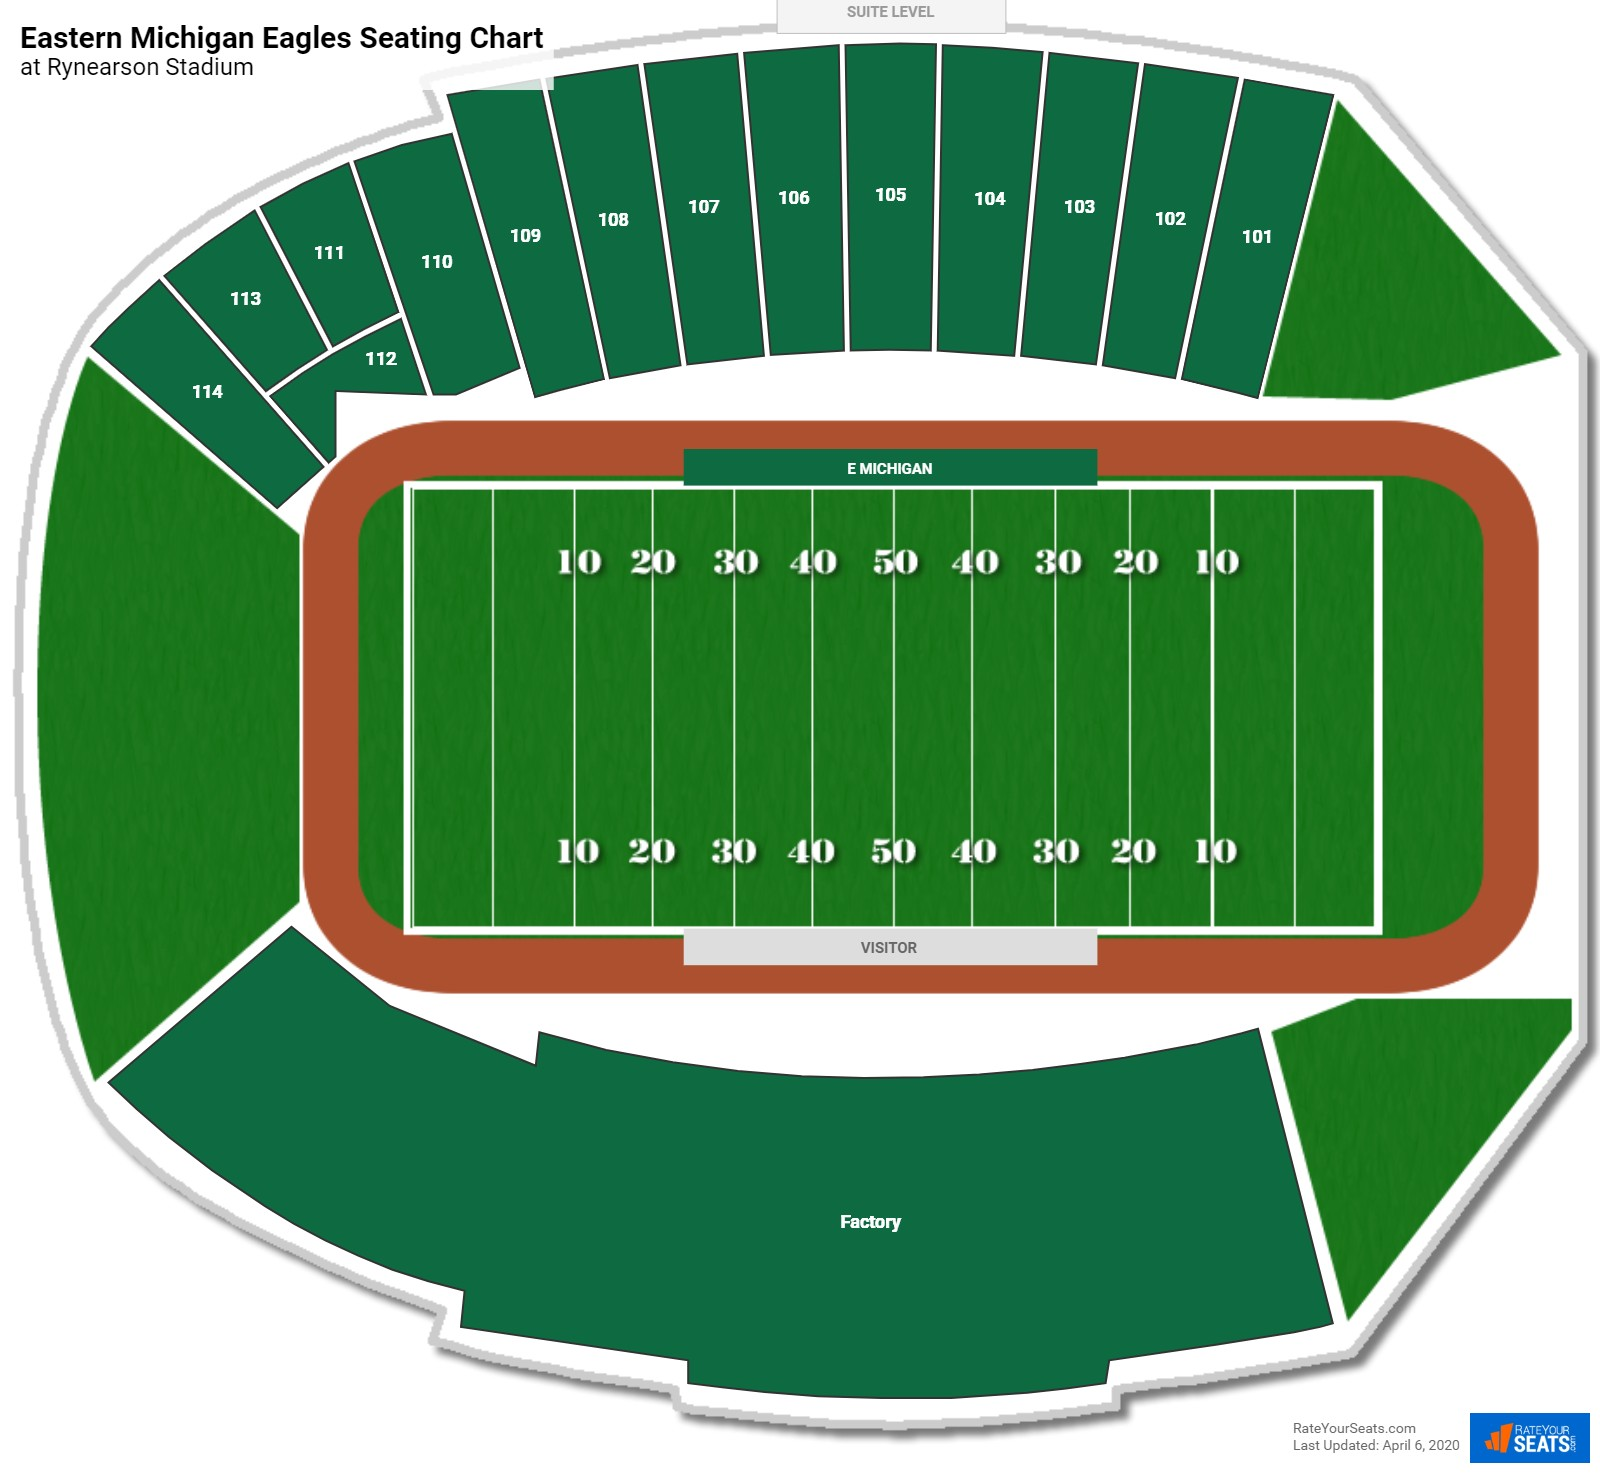 Eastern Michigan Football Seating Chart